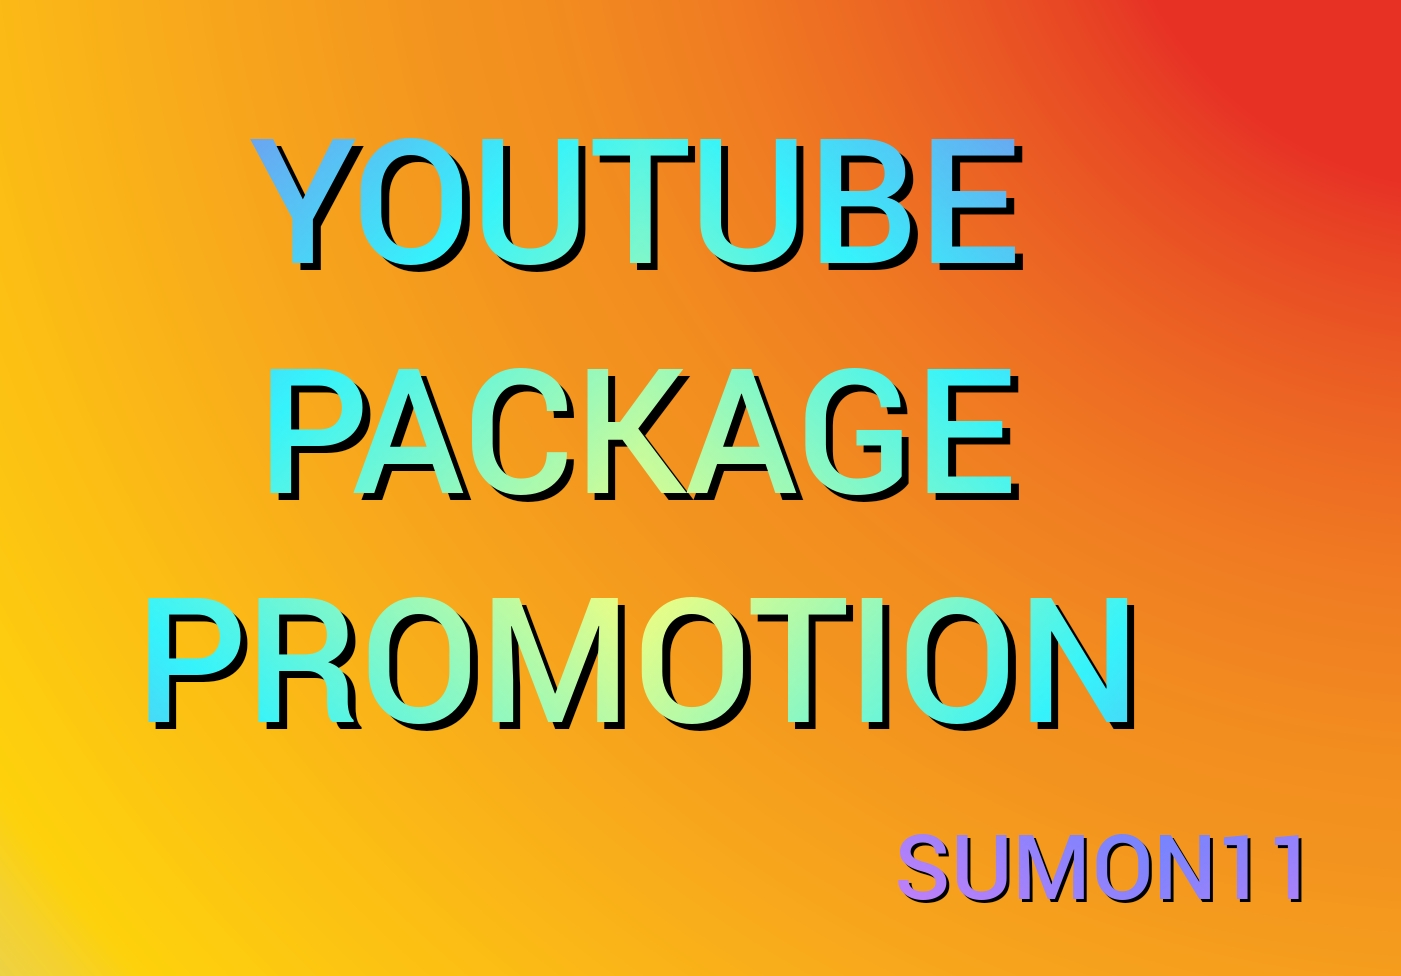 Fast Youtube video promotion Social media marketing by Sumon1